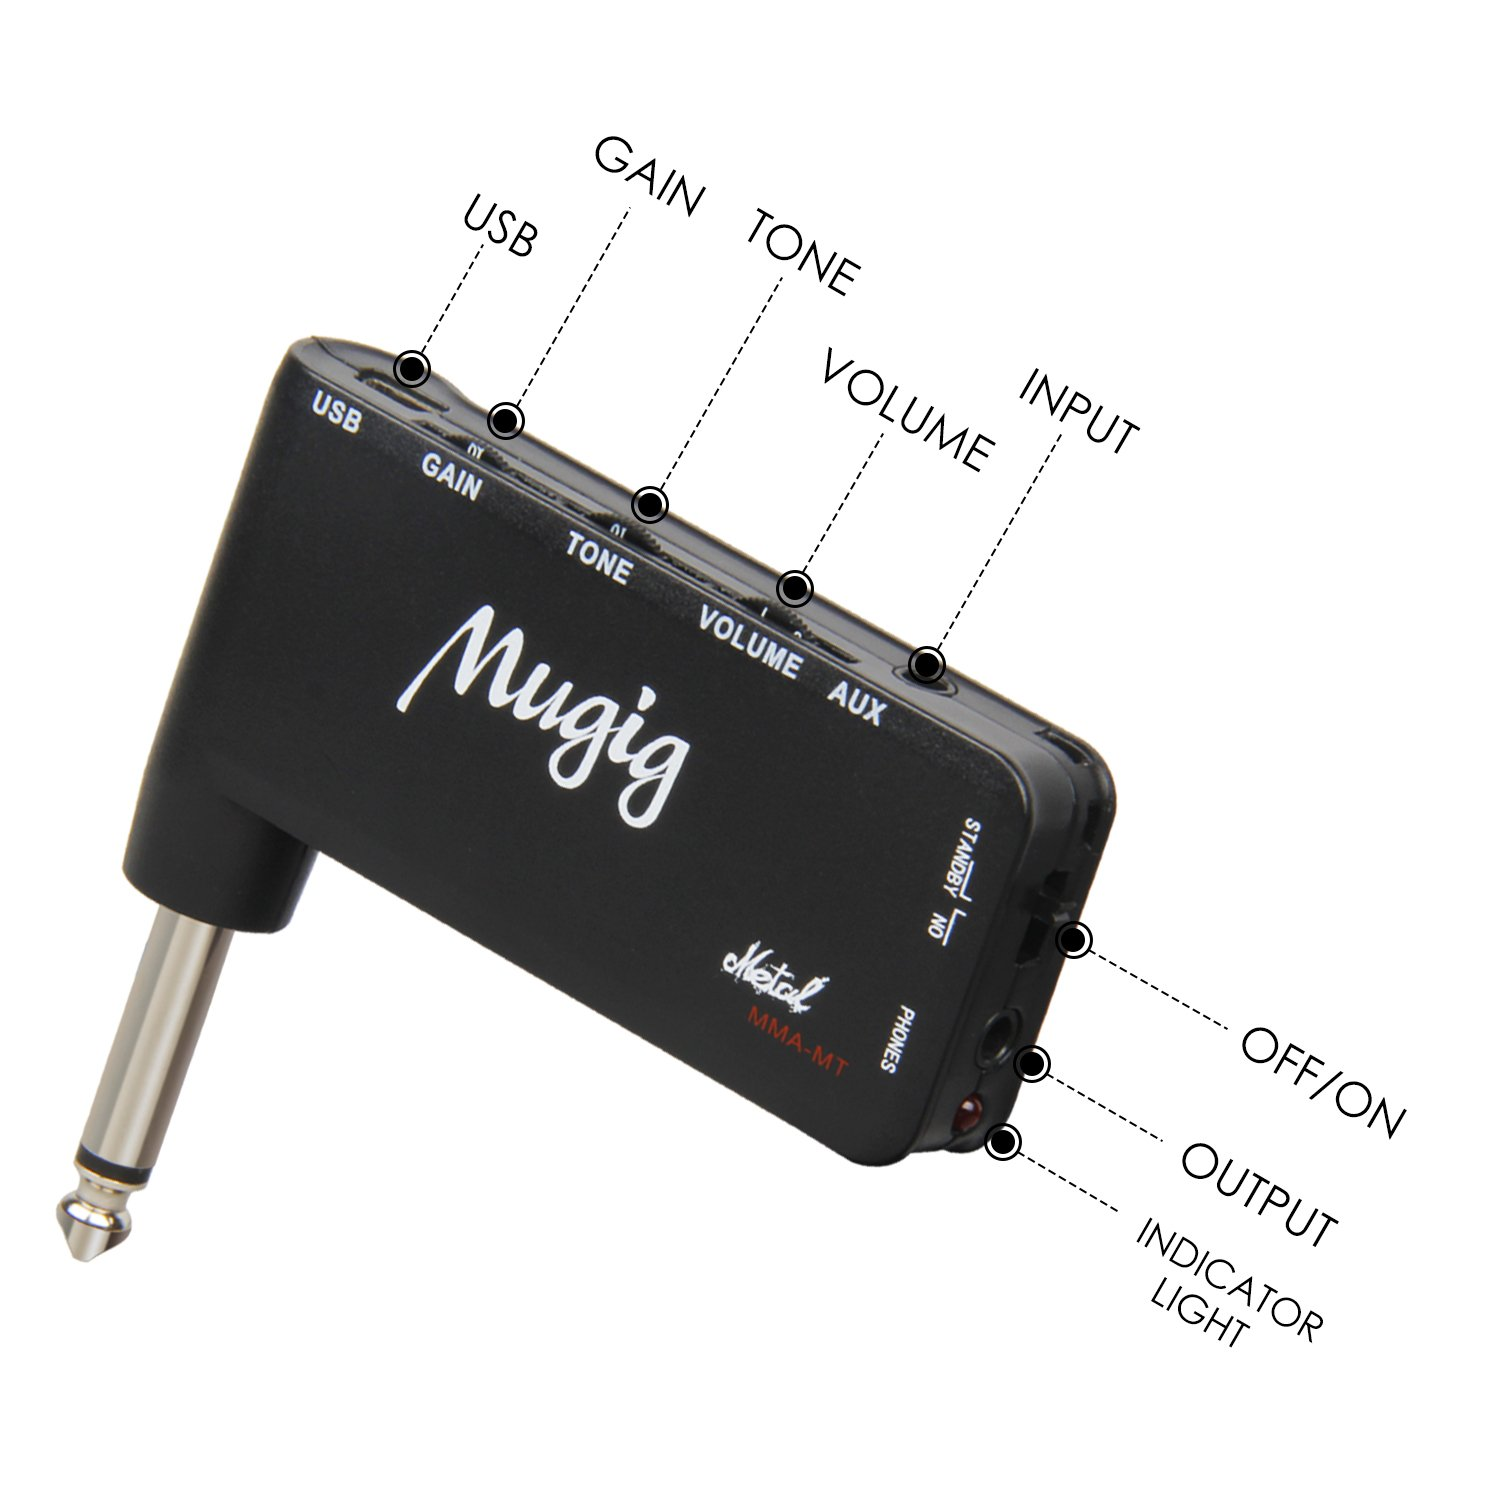 Mugig Mini Guitar Amp for headphones, Metal Effect and Rechargeable guitar Amplifier for Heavy Music, with Mp3 and Earphone Input Jack, Portable